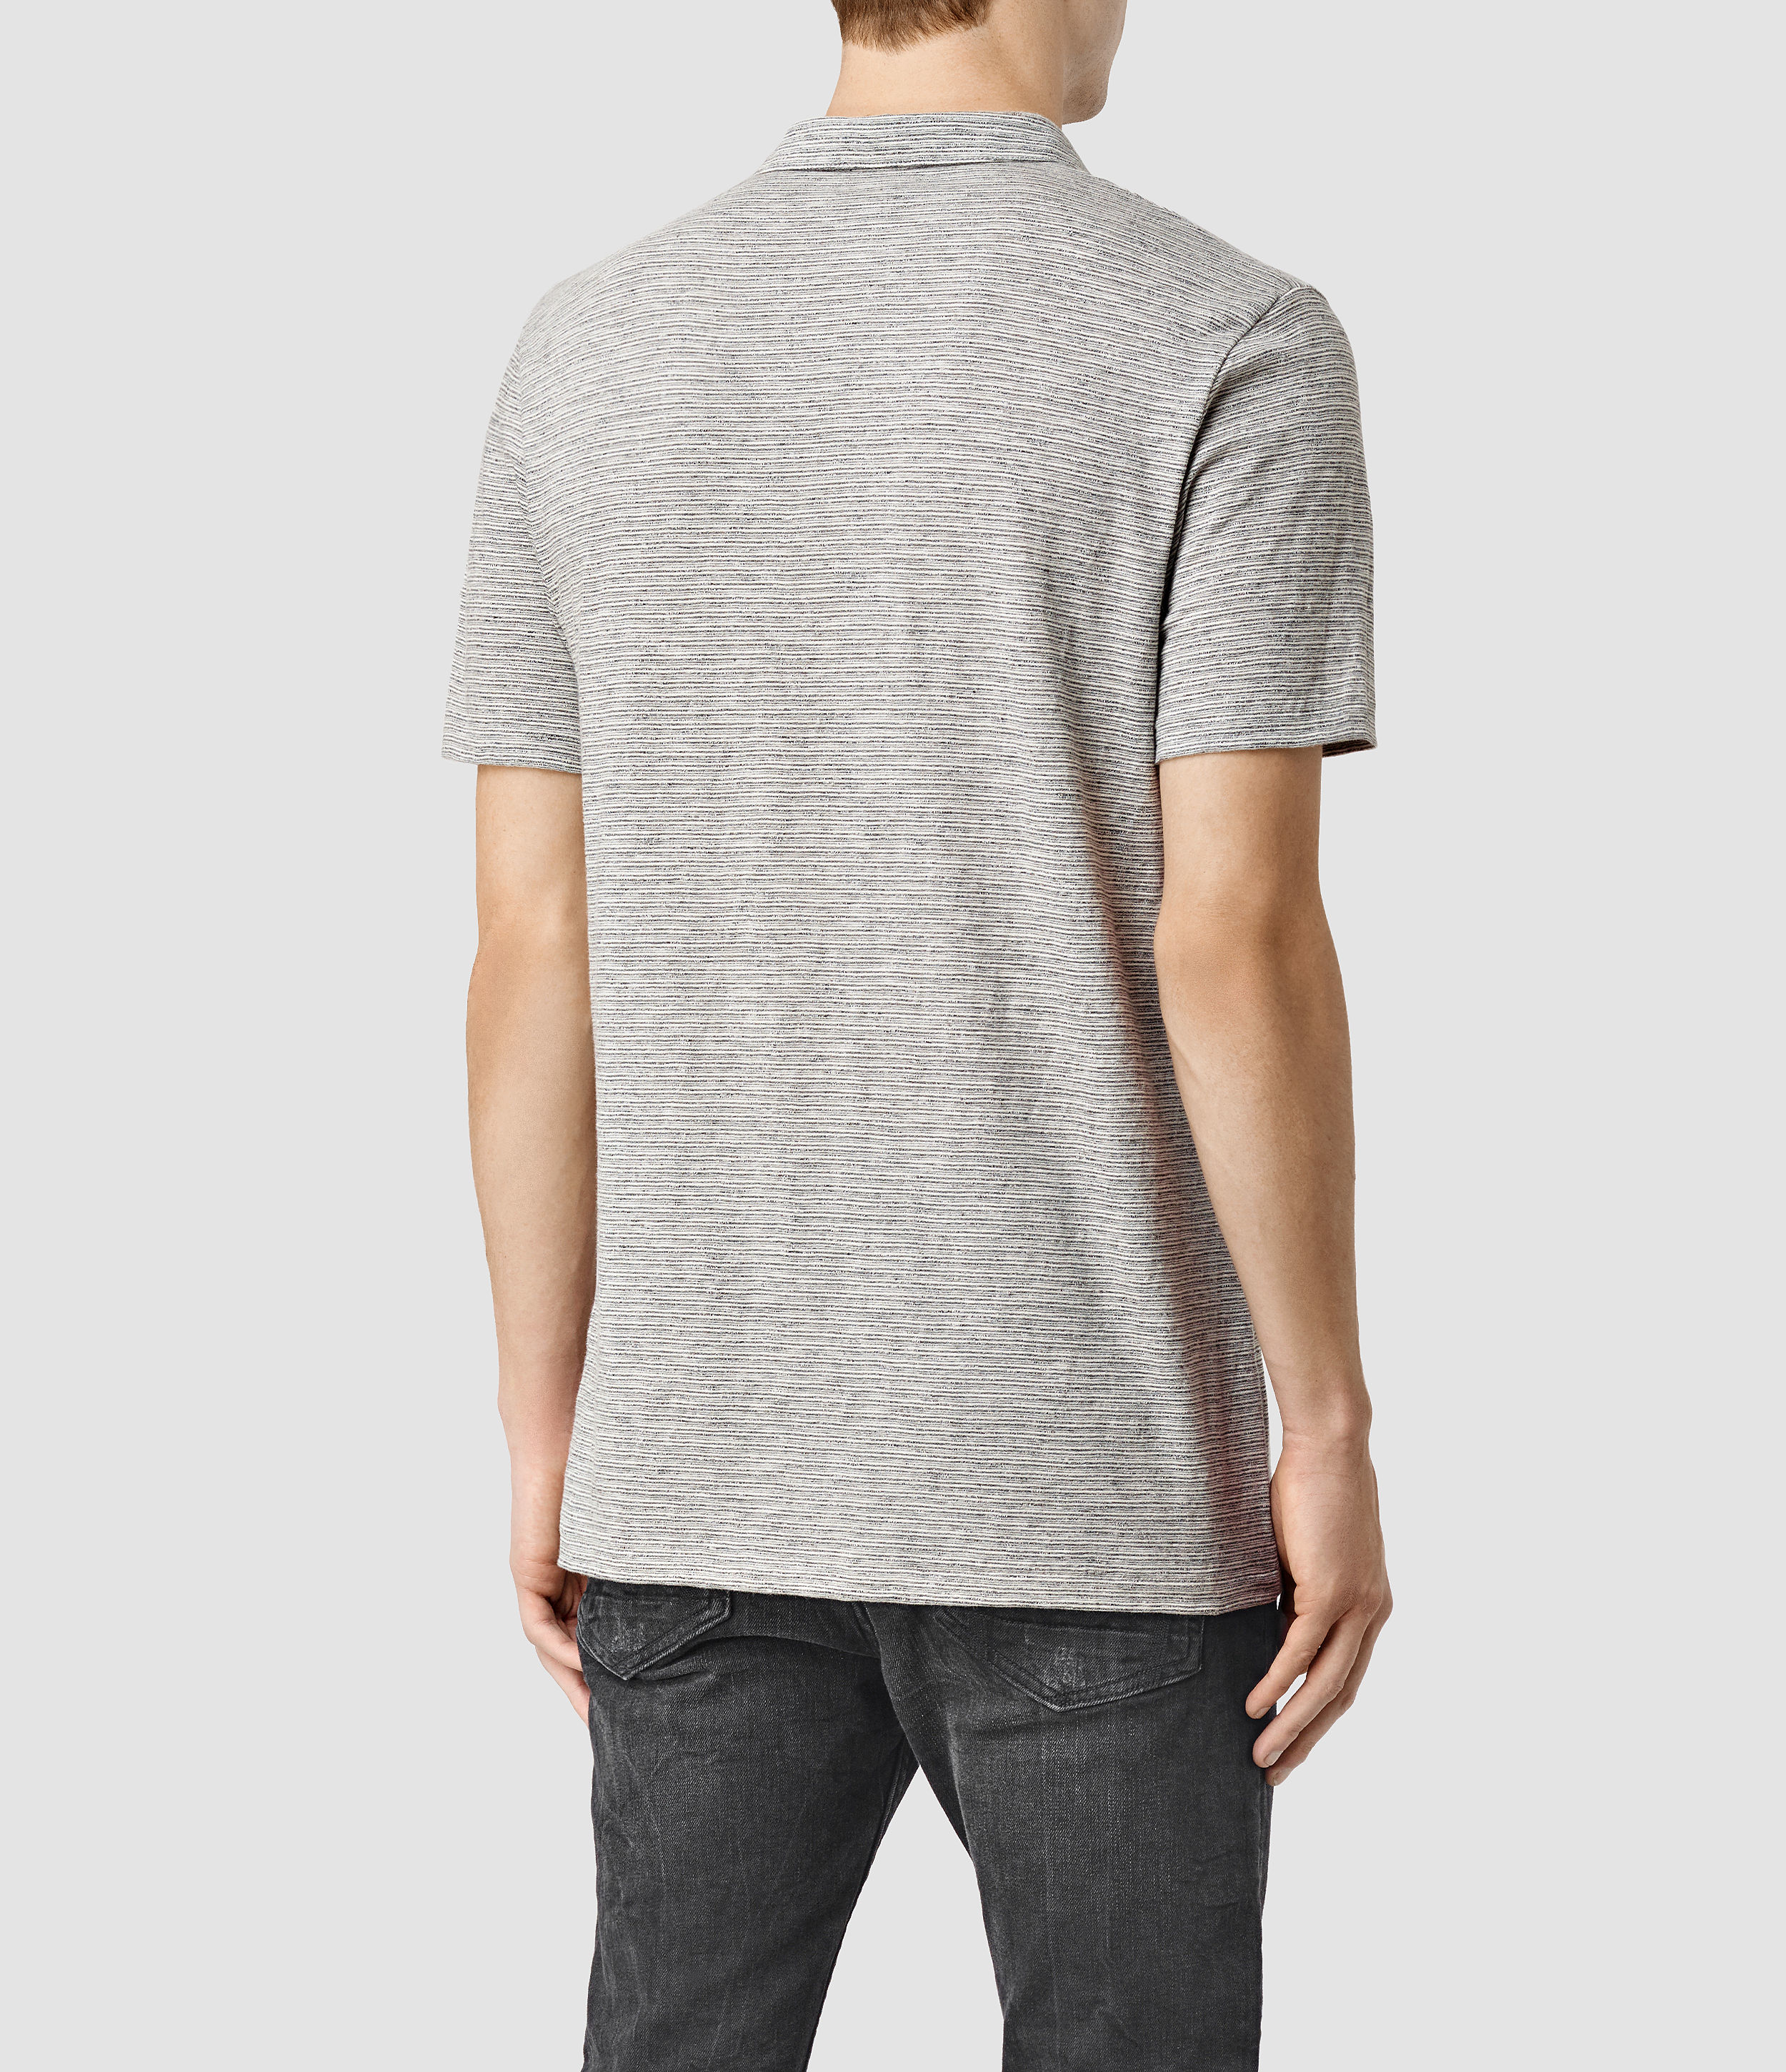 Allsaints acer polo shirt usa usa in gray for men lyst for All saints polo shirt